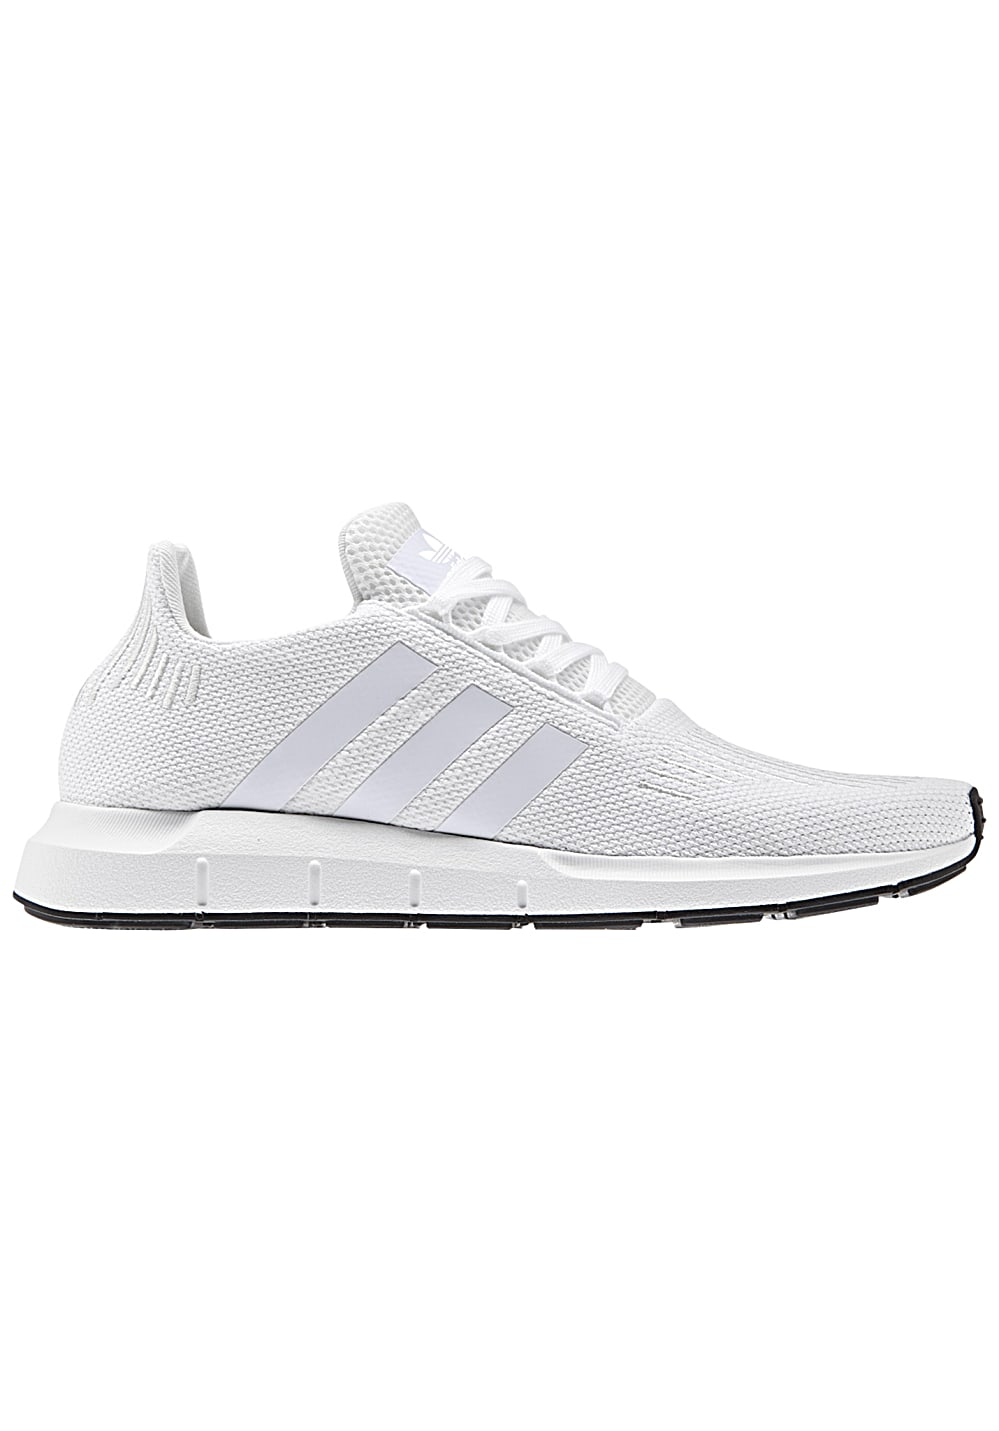 adidas Originals Swift Run - Sneaker für Herren - Weiß